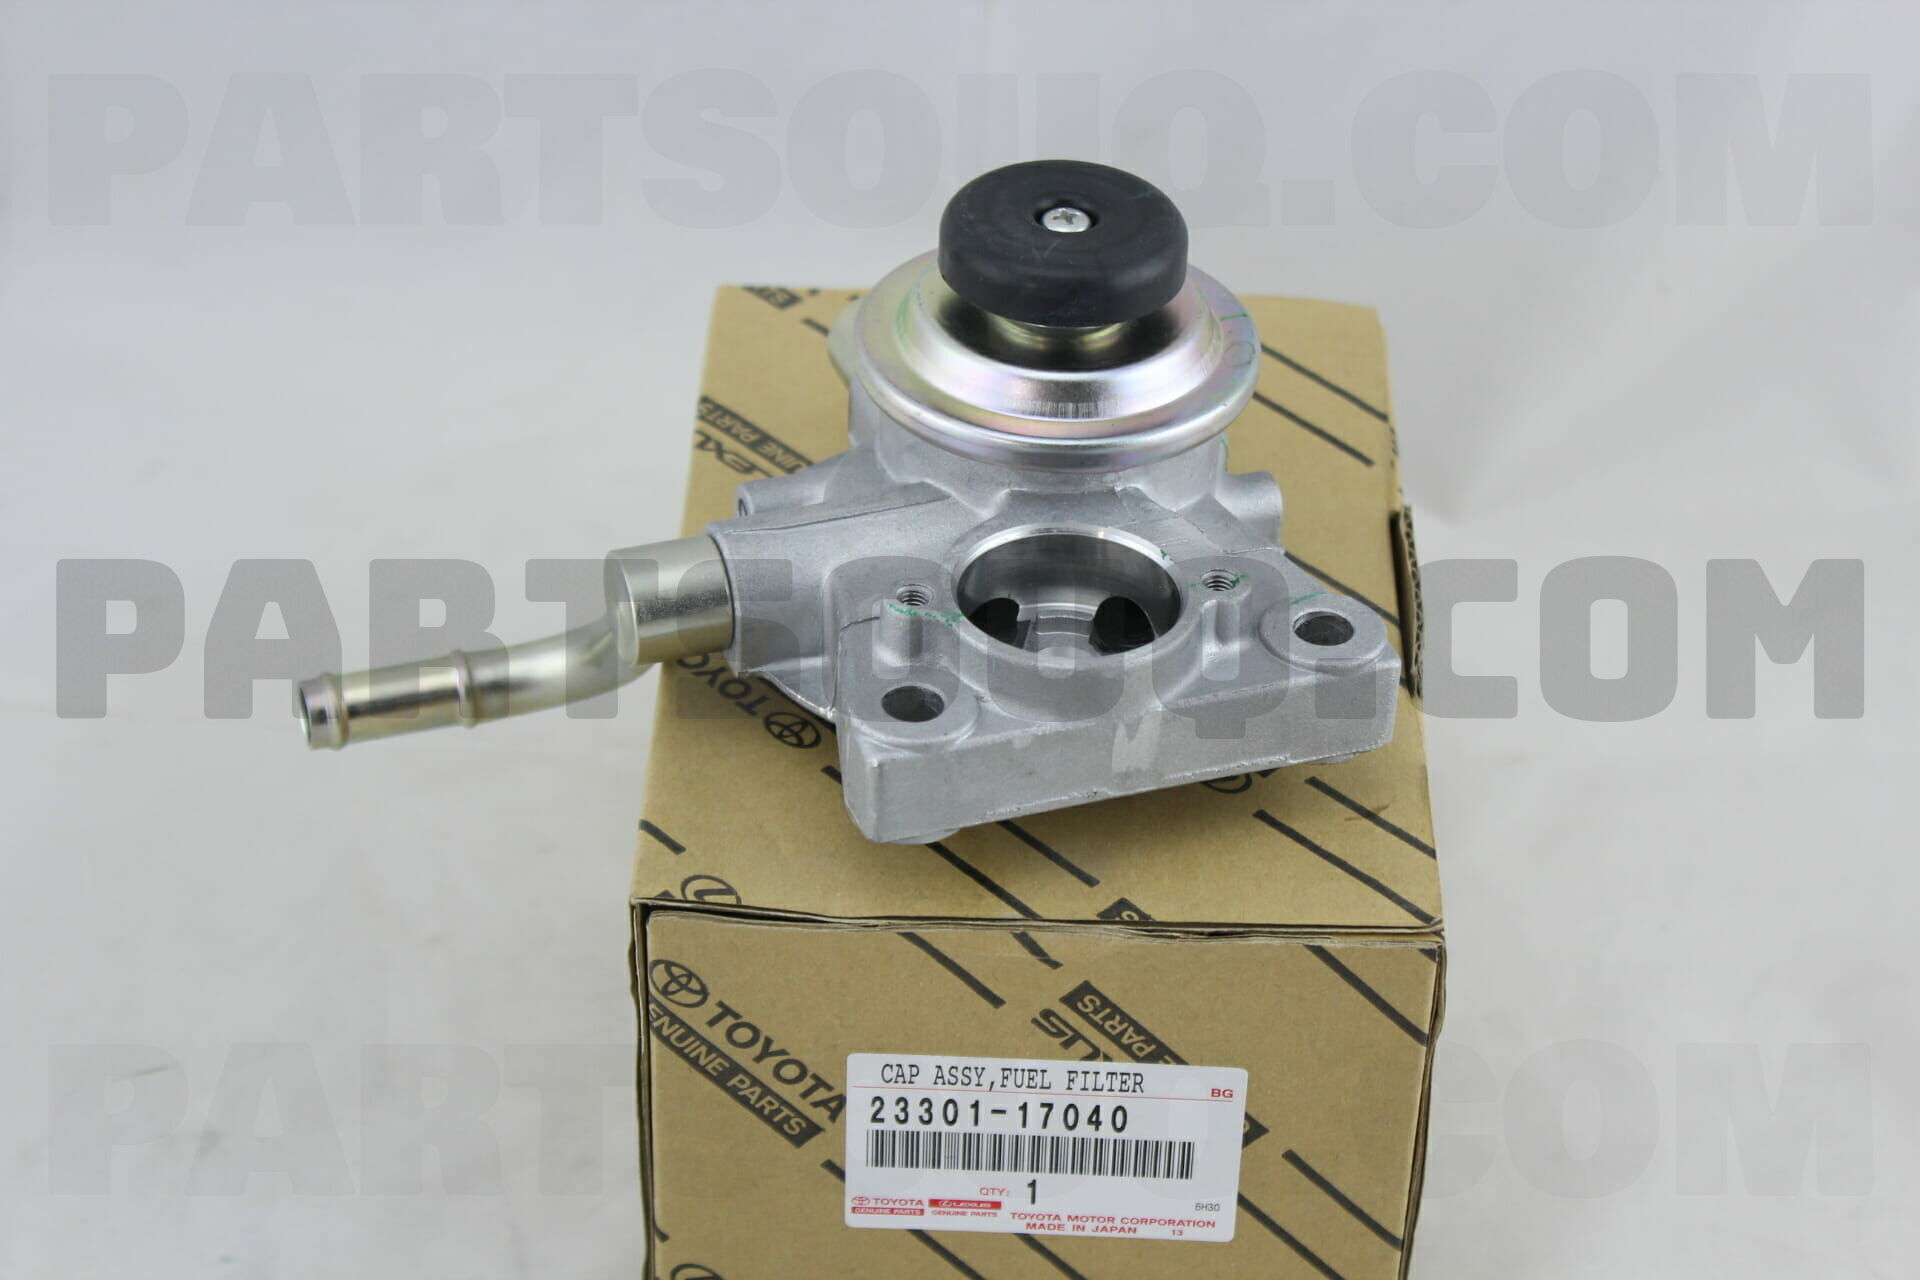 hight resolution of toyota 2330117040 cap assy fuel filter